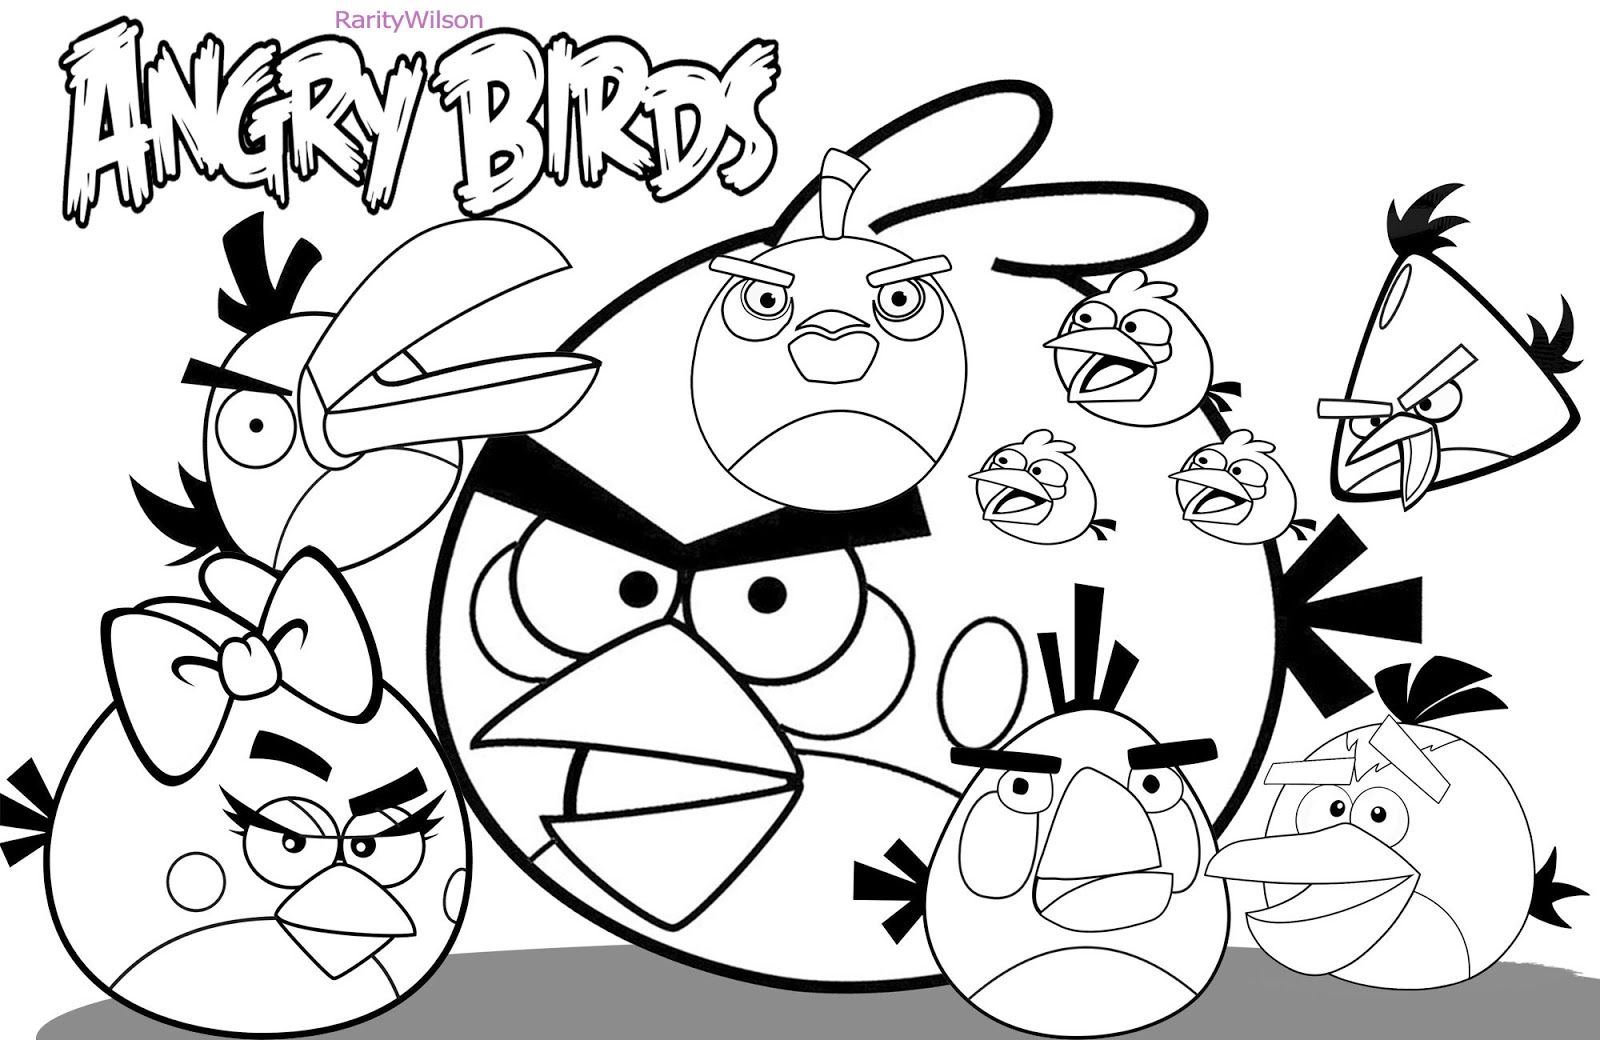 Angry Birds Bird Coloring Pages Unicorn Coloring Pages Dinosaur Coloring Pages